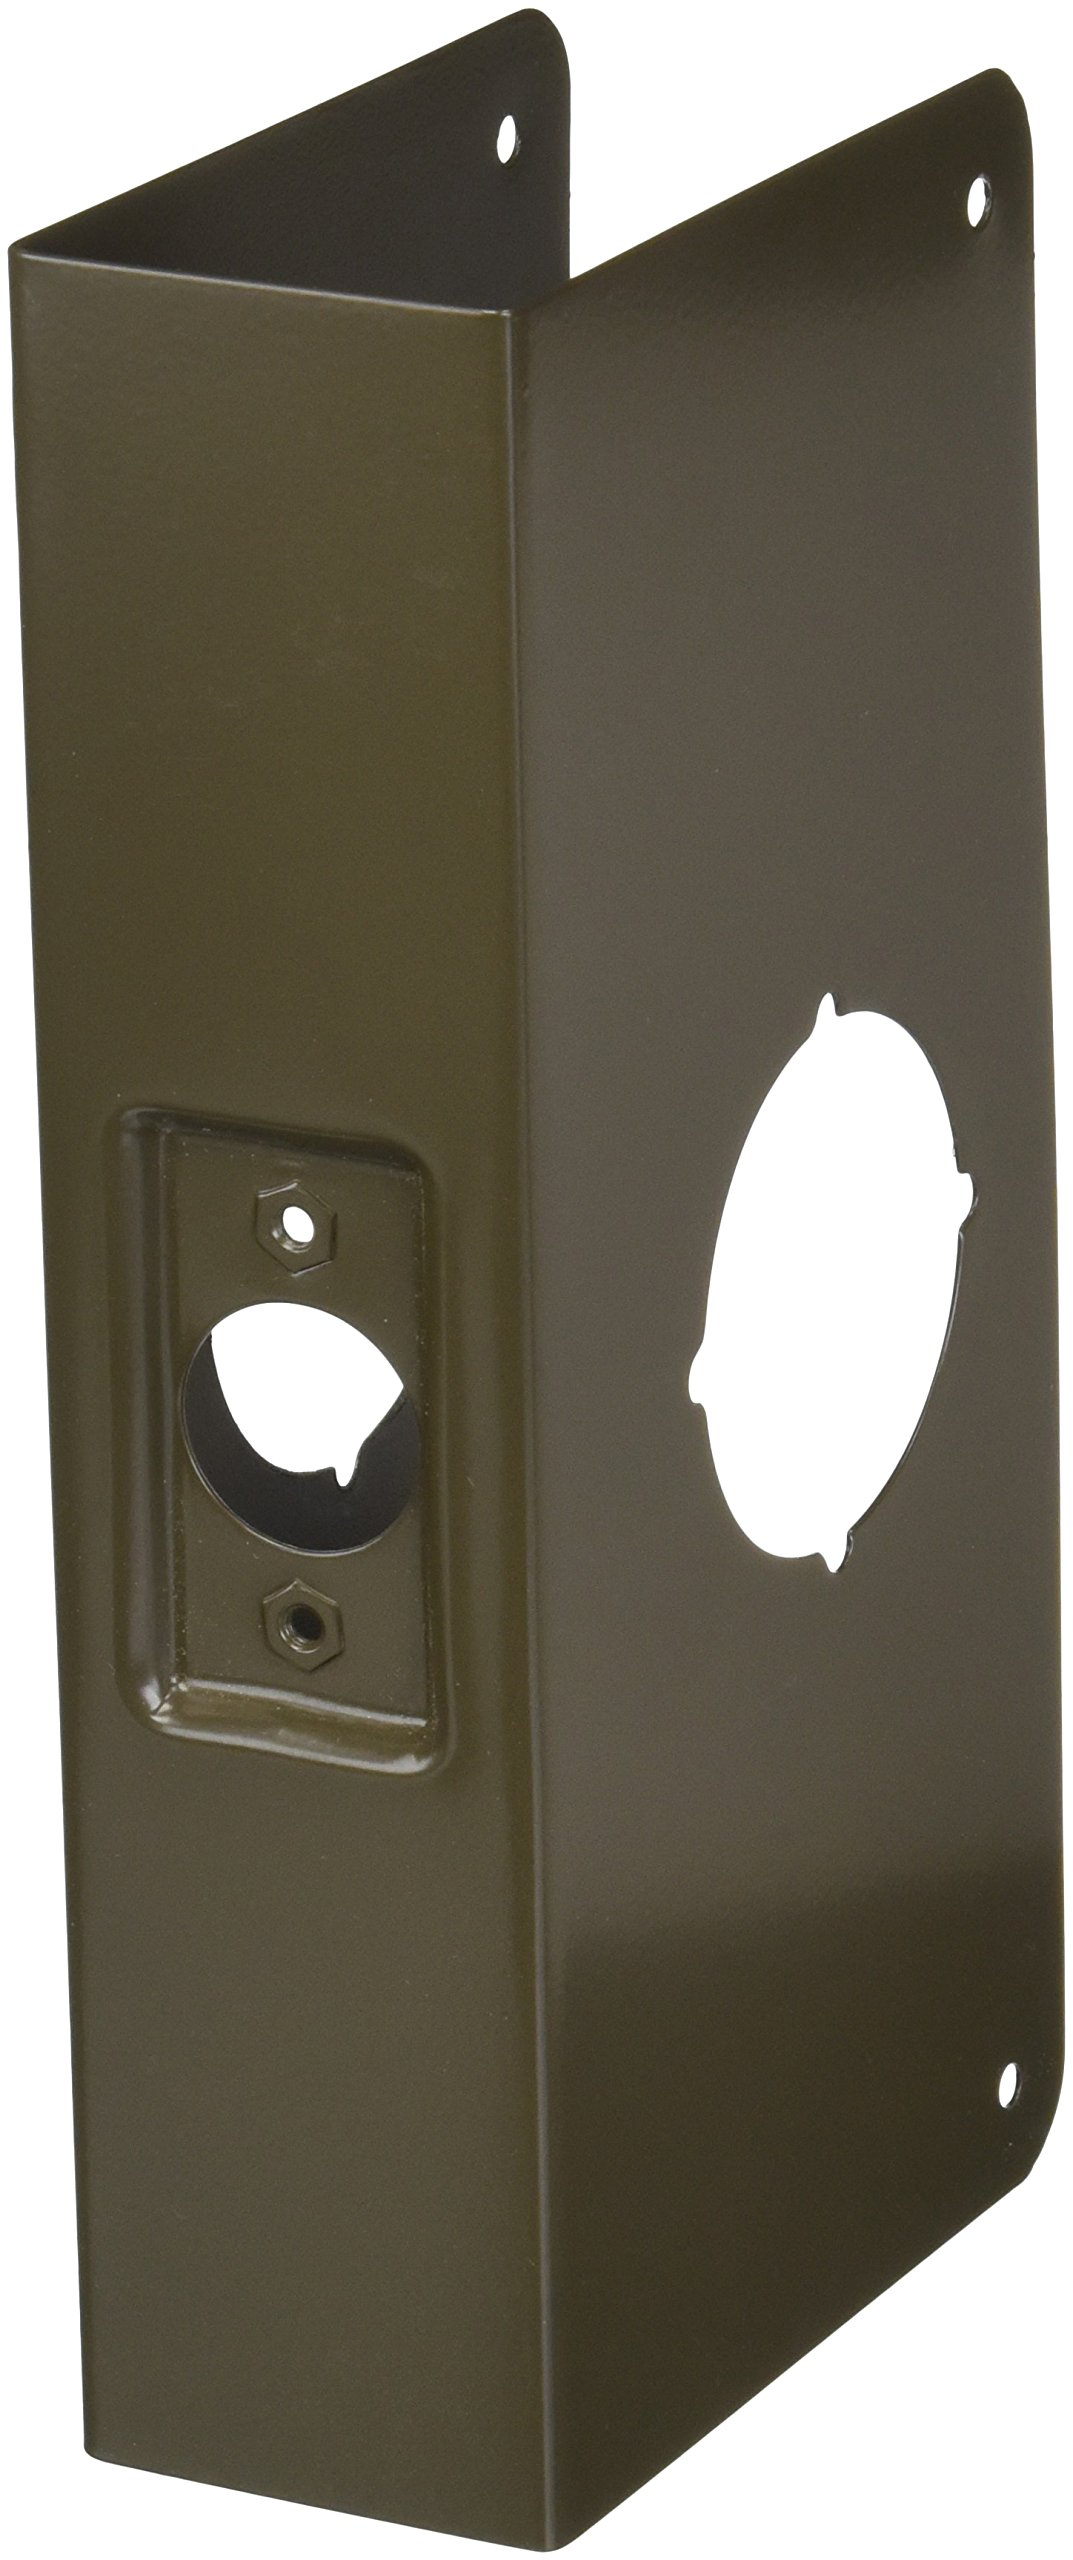 Don-Jo 200C-CW 22 Gauge Stainless Steel Wrap-Around Plate, Oil Rubbed Bronze Finish, 4-1/4'' Width x 9'' Height, 2-3/8'' Backset, 2'' Door Size, For Thicker Doors